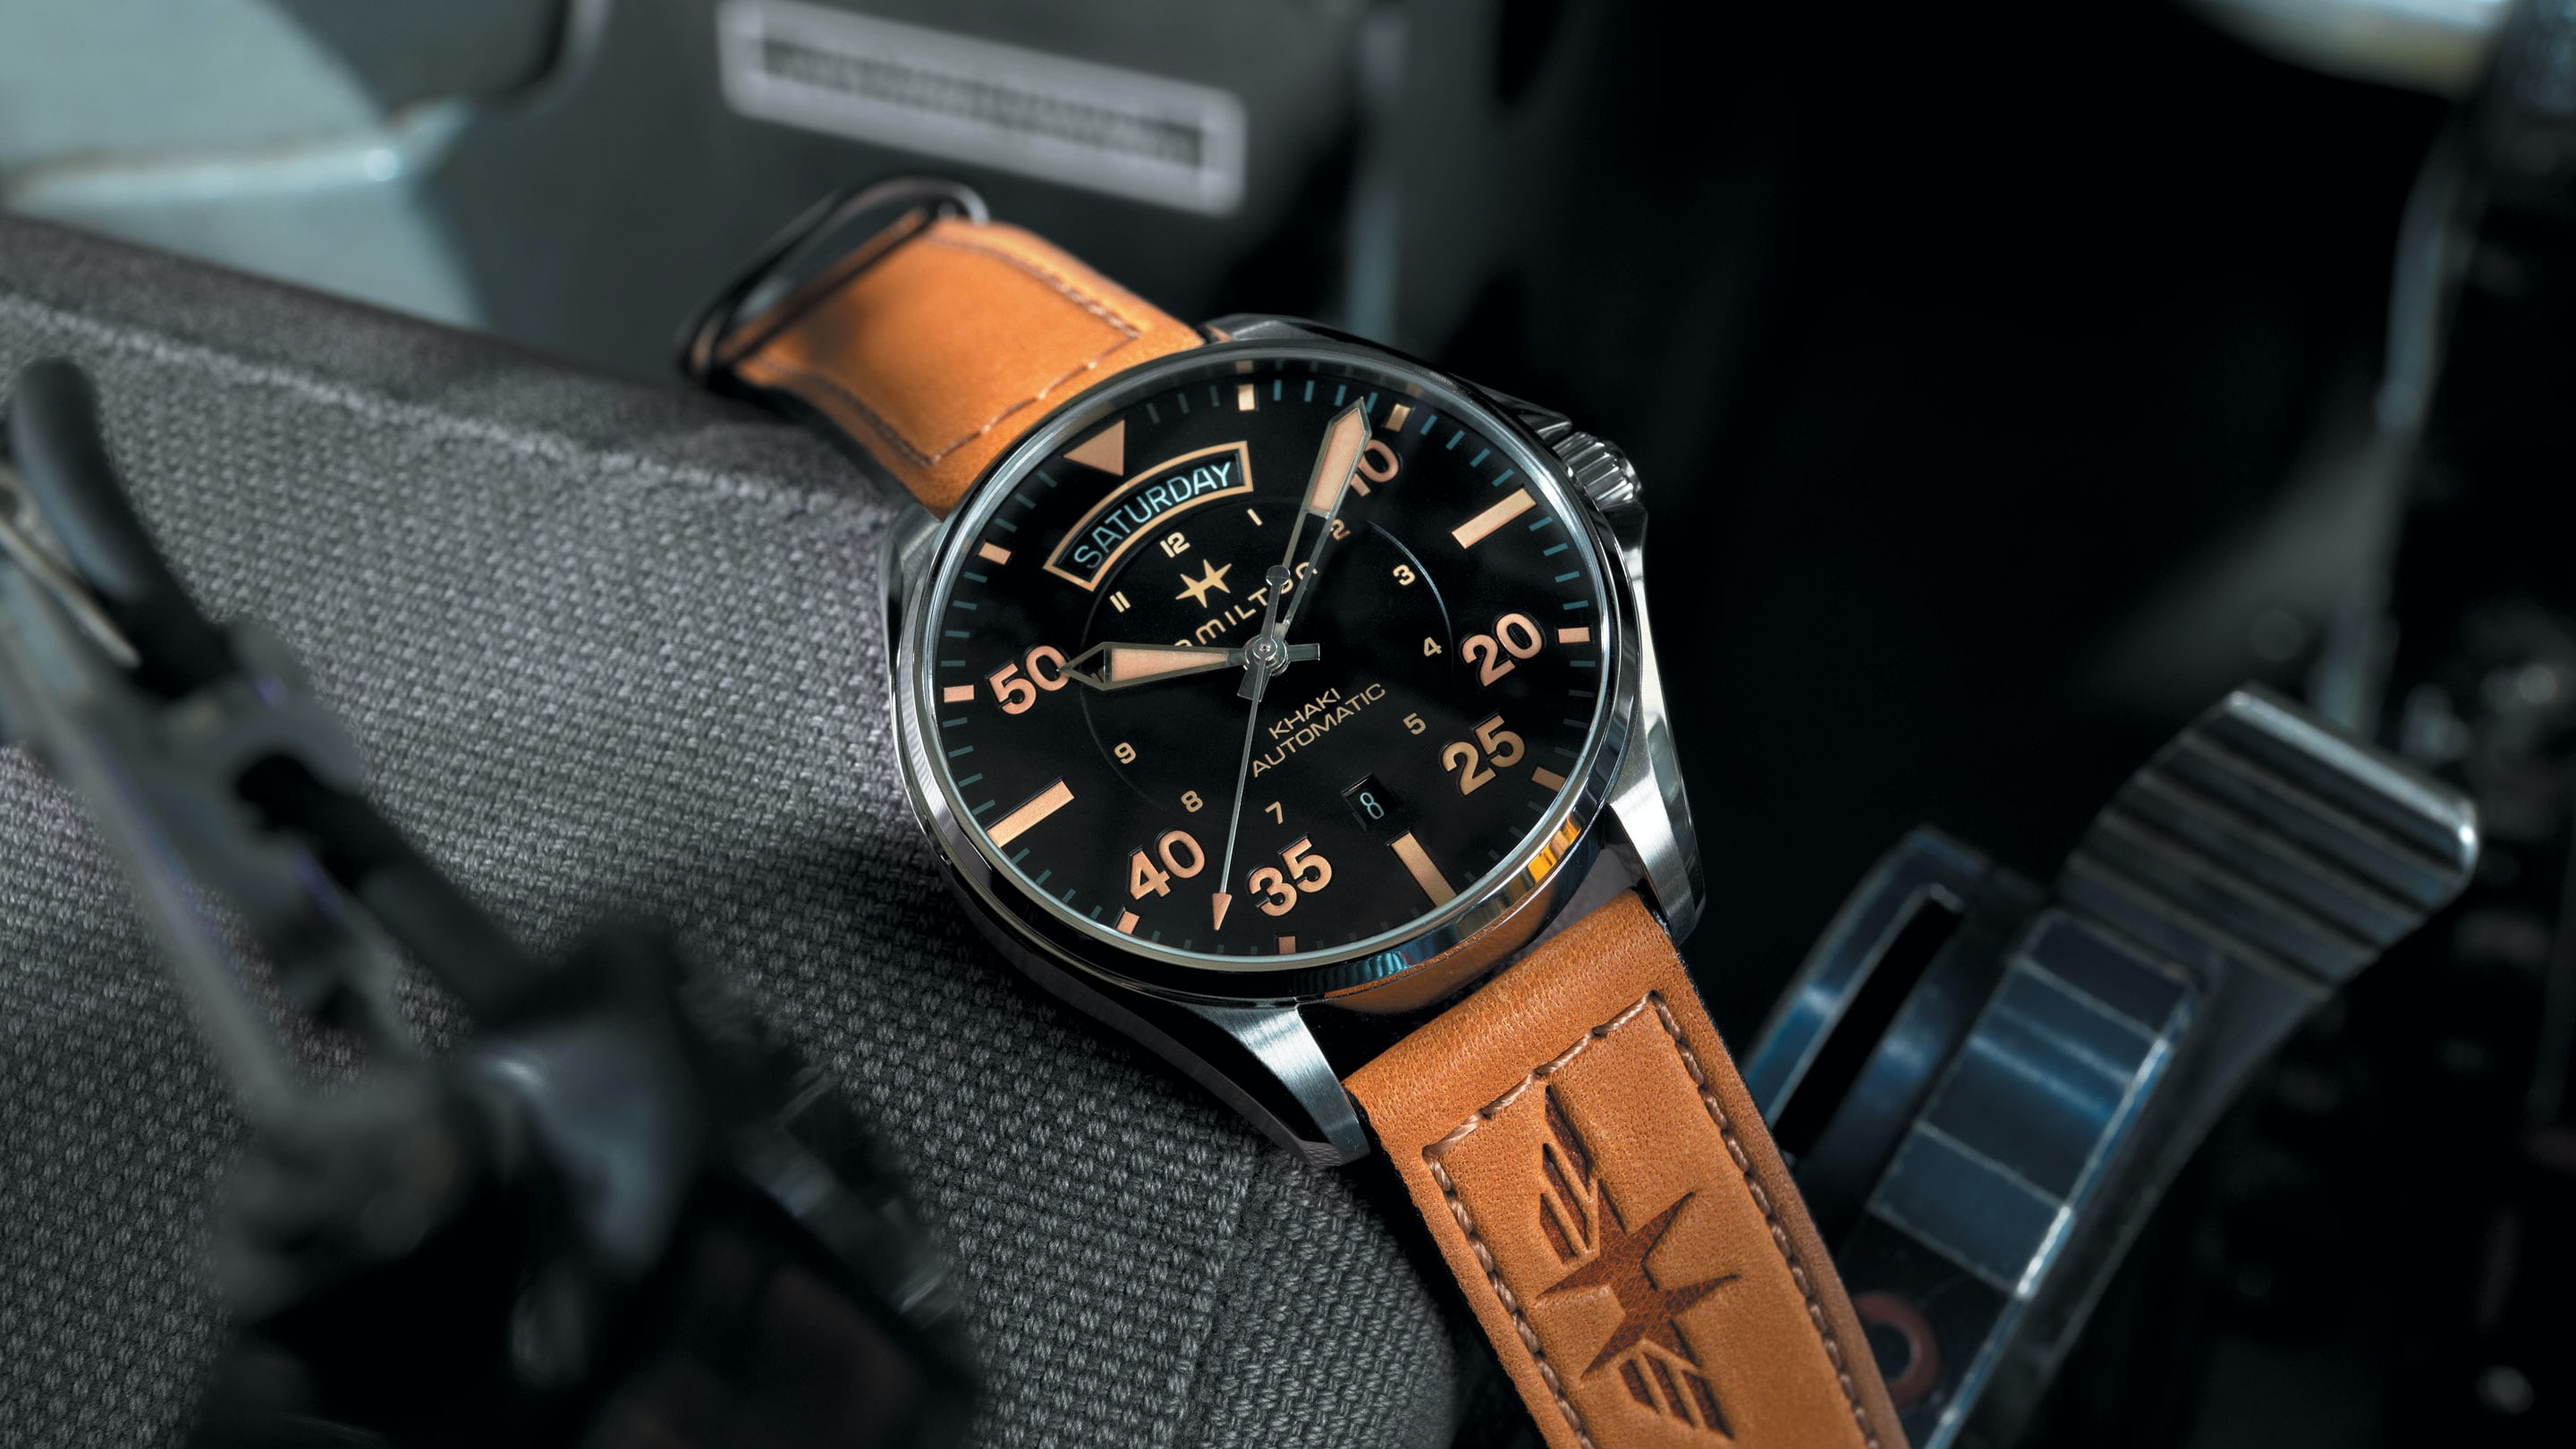 Introducing  The Hamilton Khaki Pilot Auto Day Date - HODINKEE 34f238a7e6e4